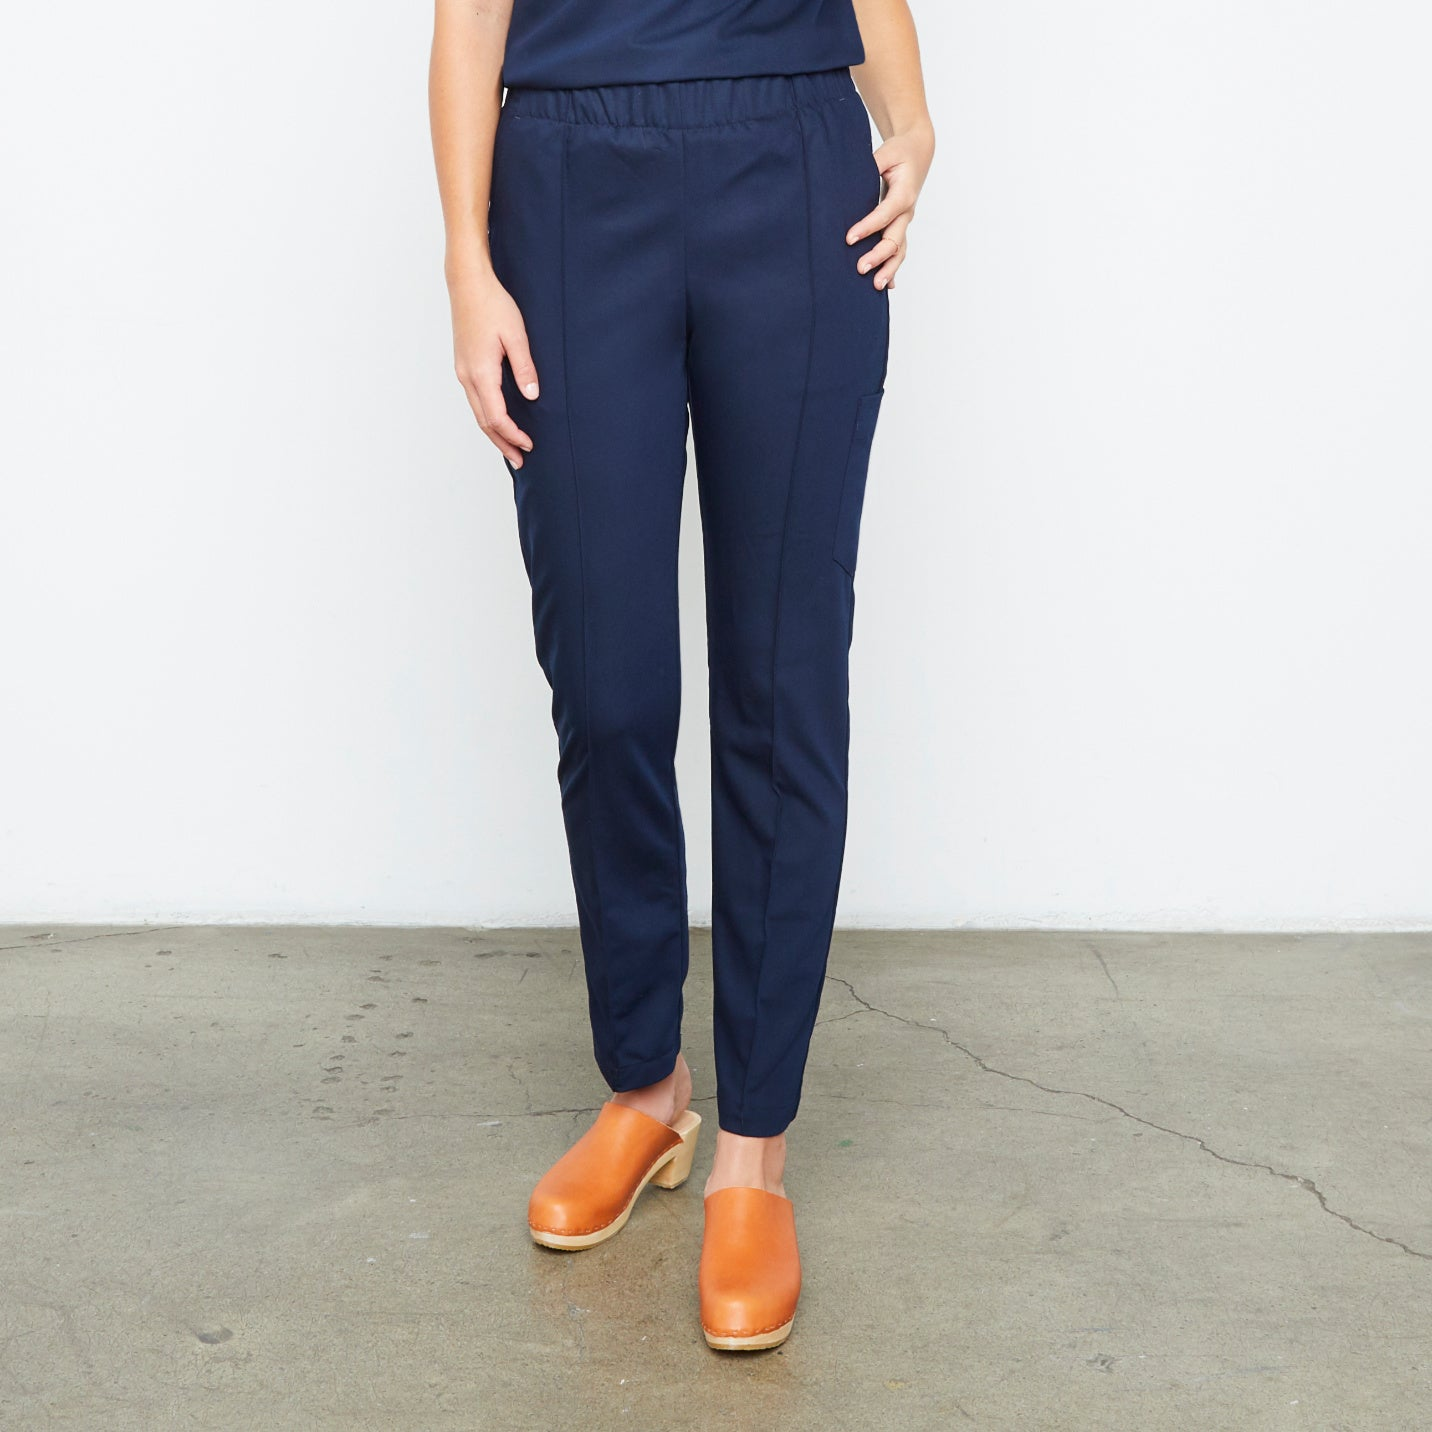 Harley Pant (Really Dark Navy) XXS | Fabled makes beautiful high quality scrub pants for women. Scrubs fashion for women doctors and female medical workers.